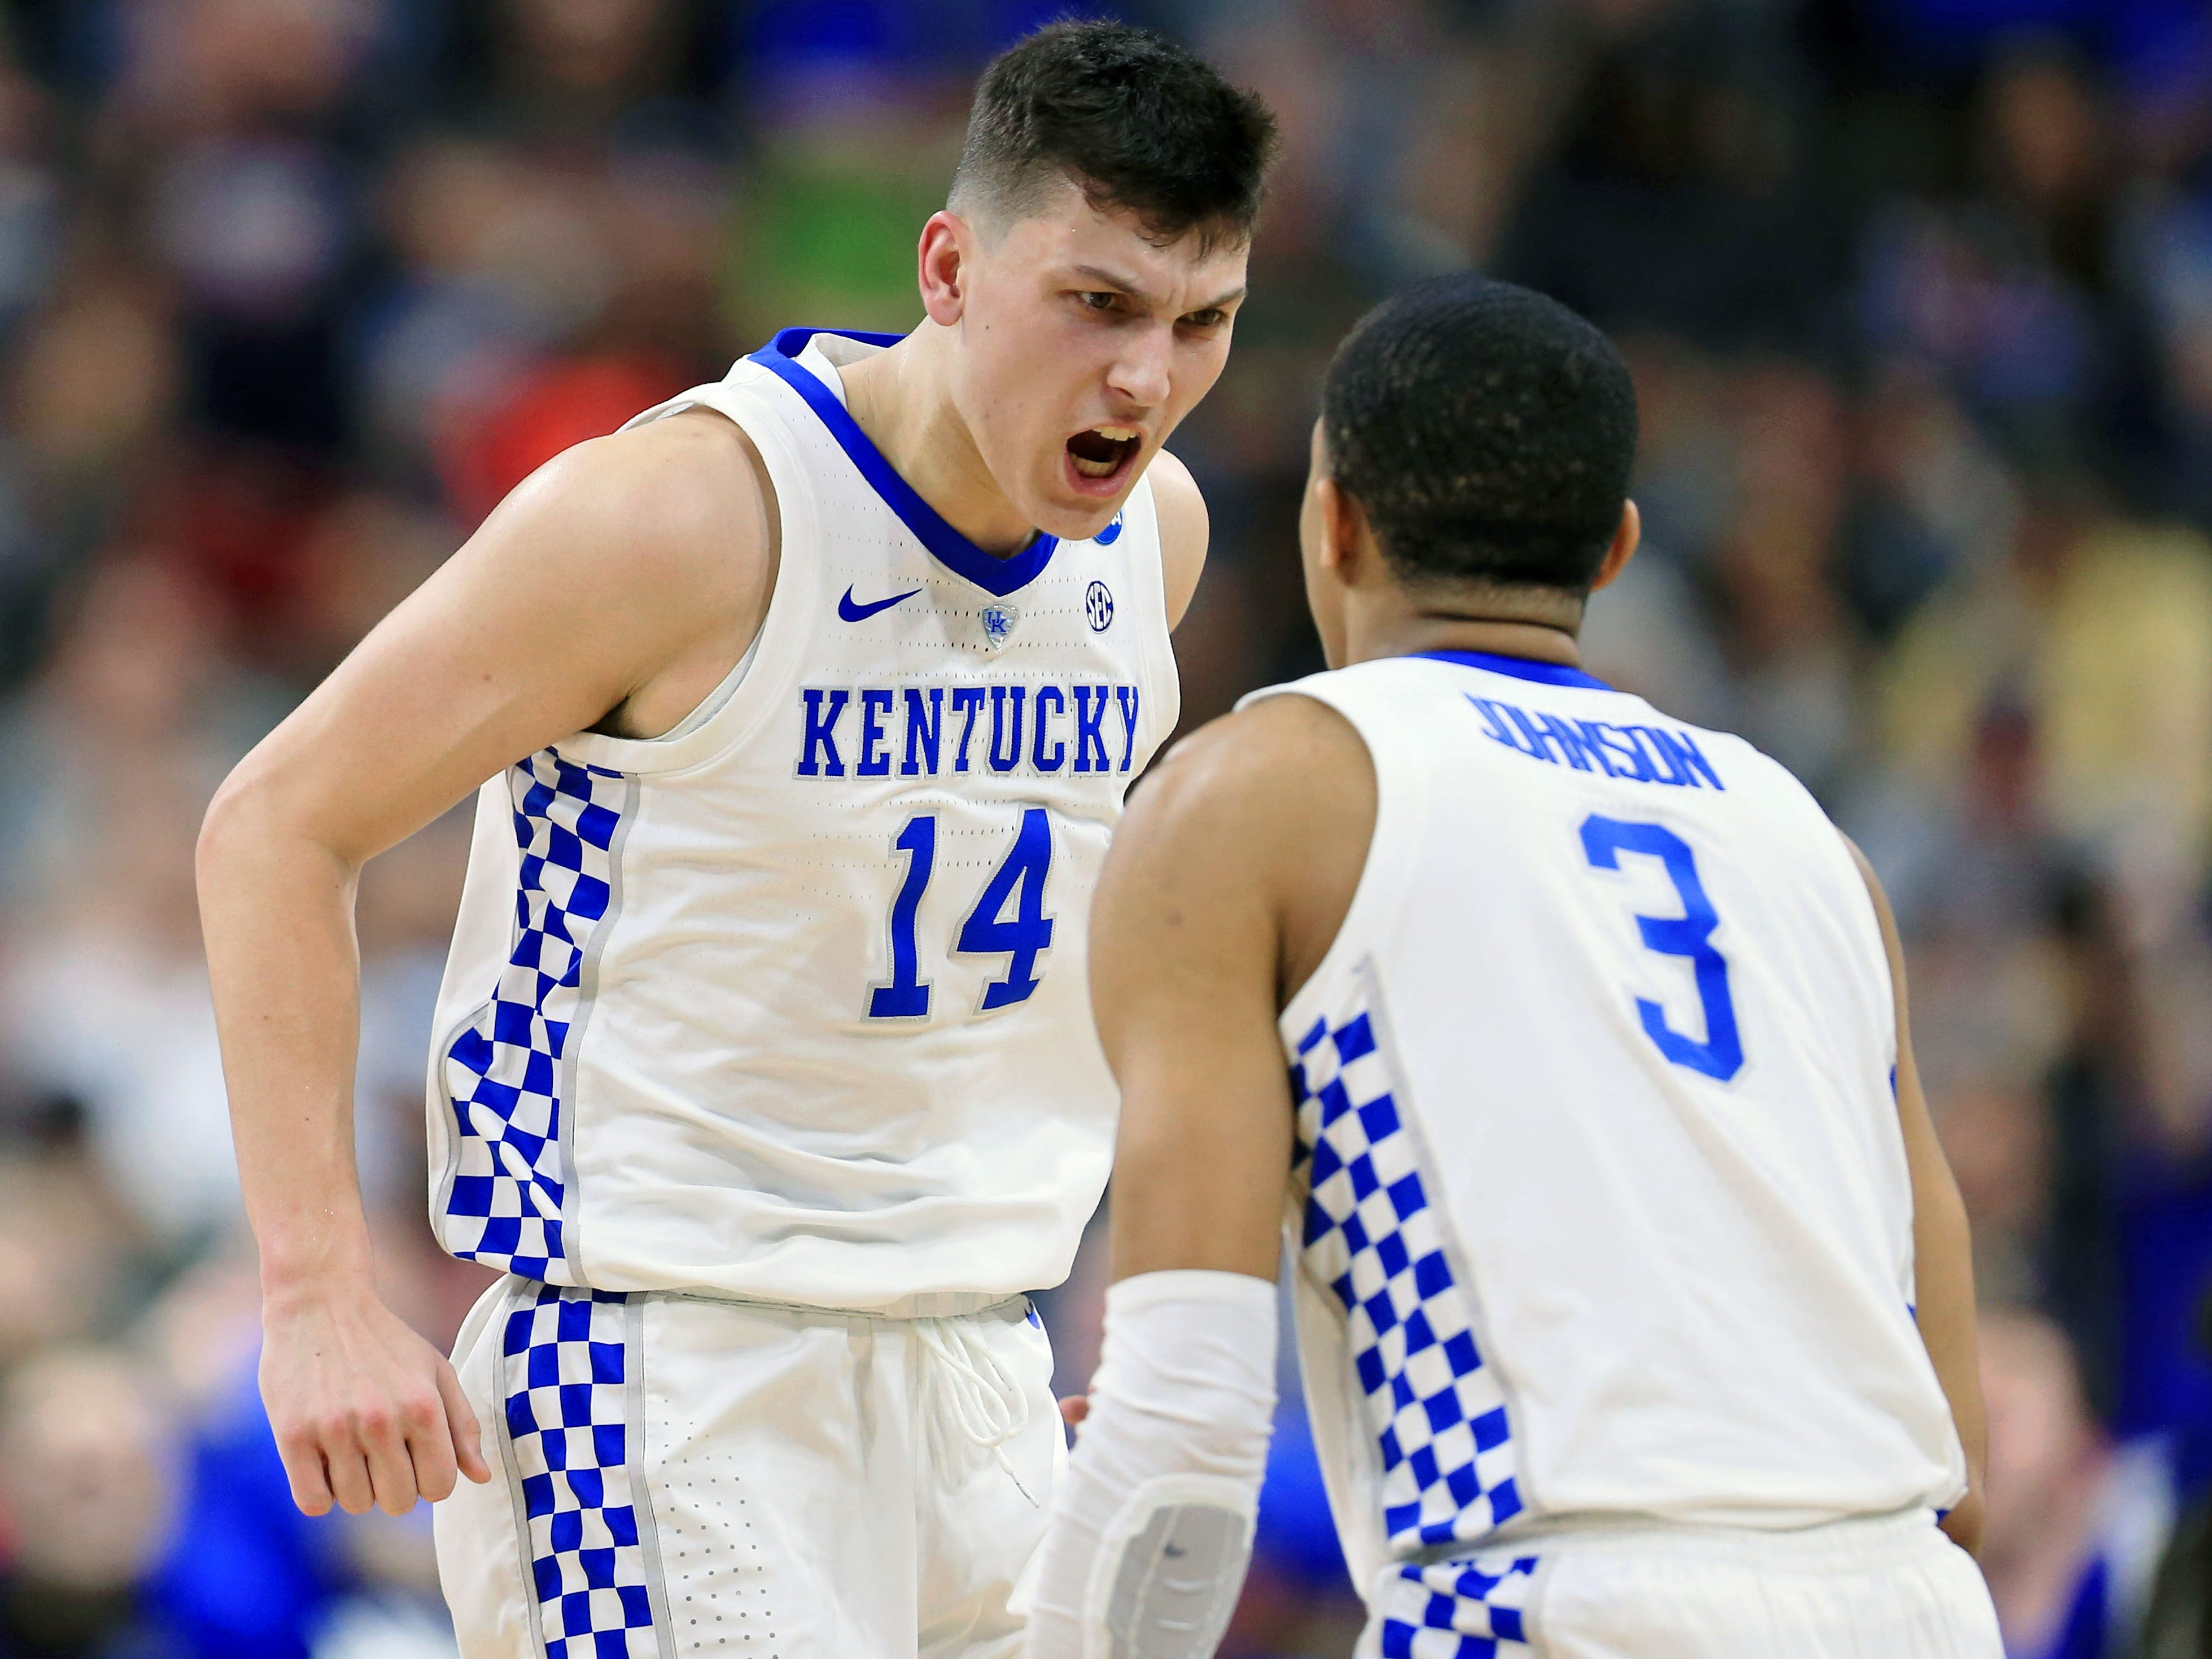 Kentucky's Tyler Herro (14) and guard Keldon Johnson celebrate during the Wildcats' 62-56 victory over Wofford in the second round of the NCAA Tournament.